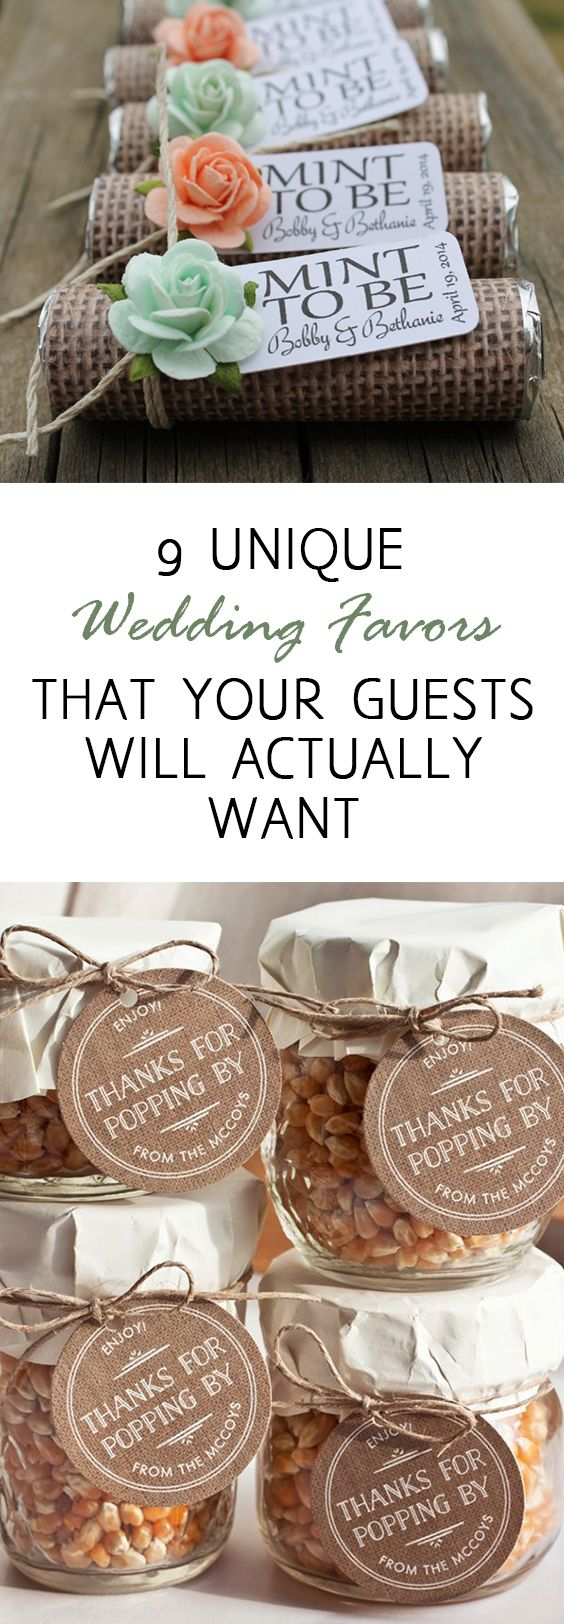 9 Unique Wedding Favors that Your Guests Will Actually Want ...